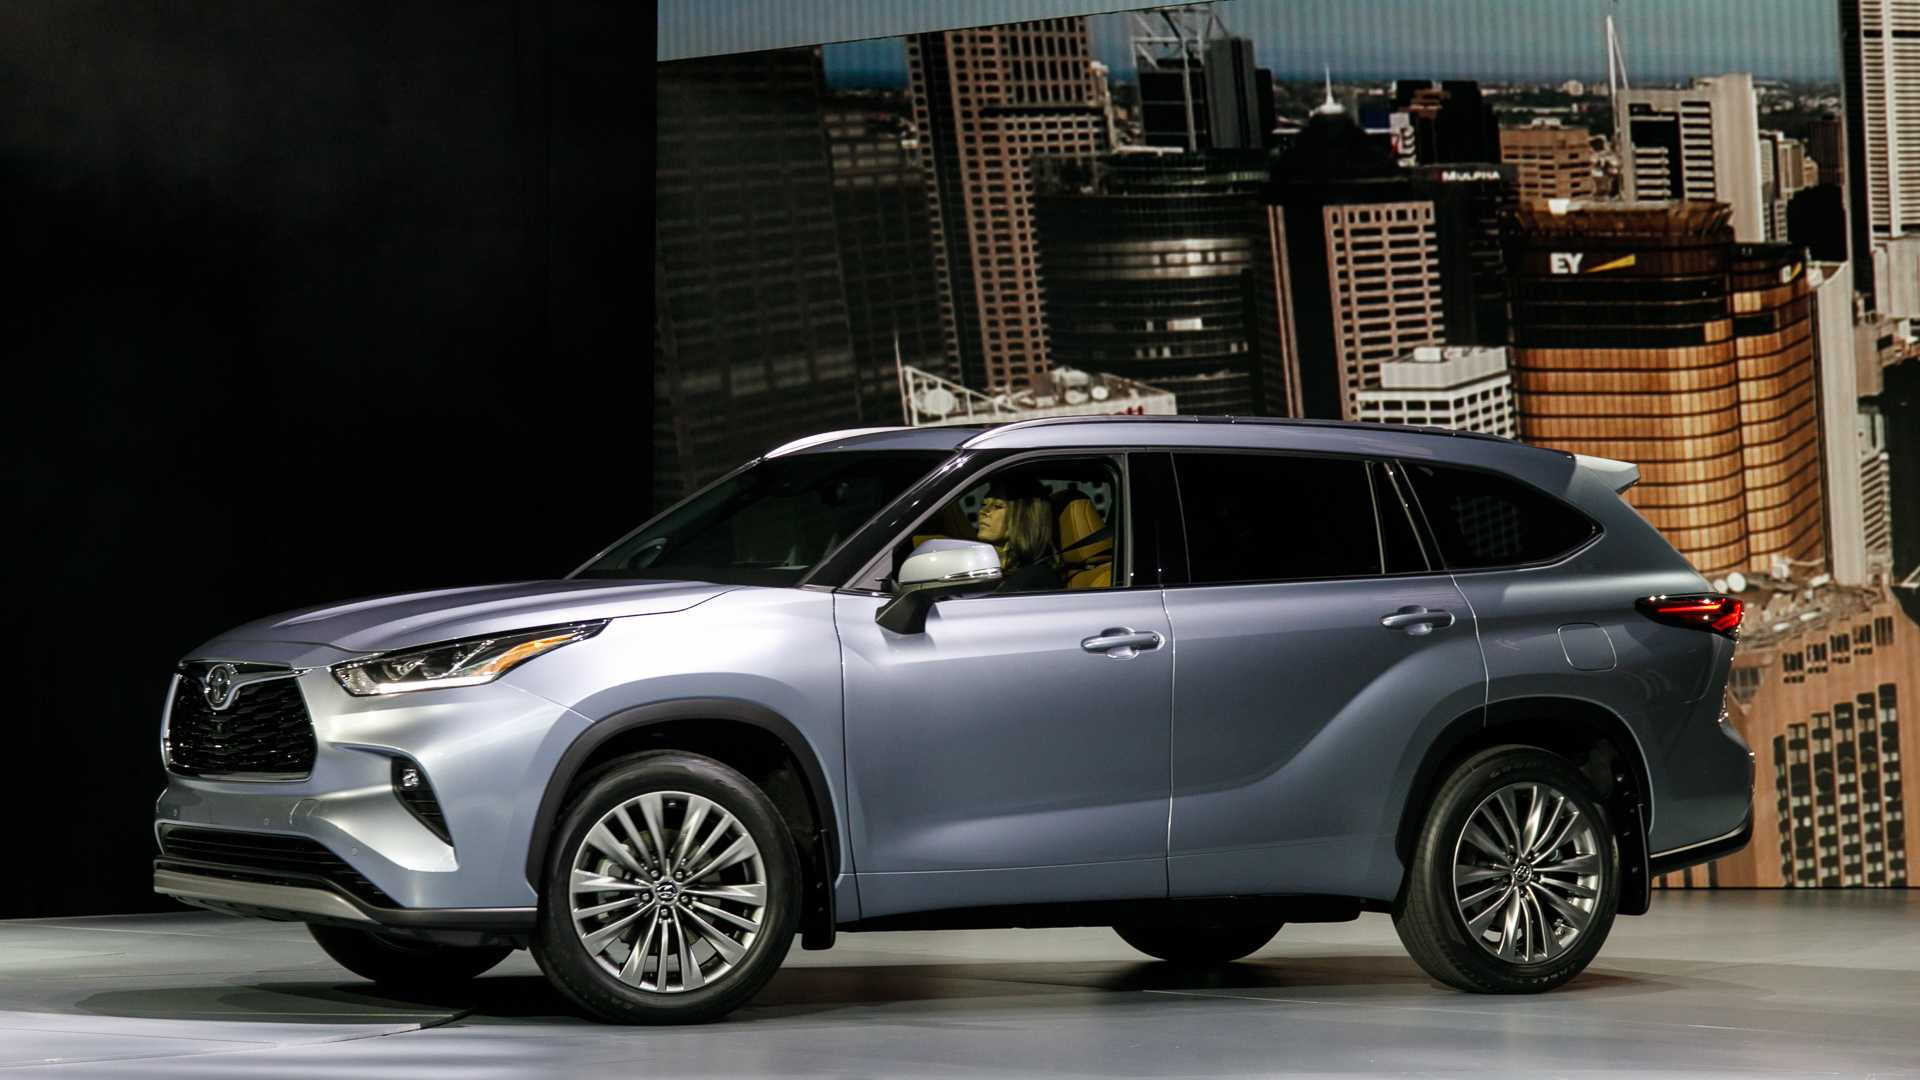 48 Concept of Toyota Kluger 2020 Model with Toyota Kluger 2020